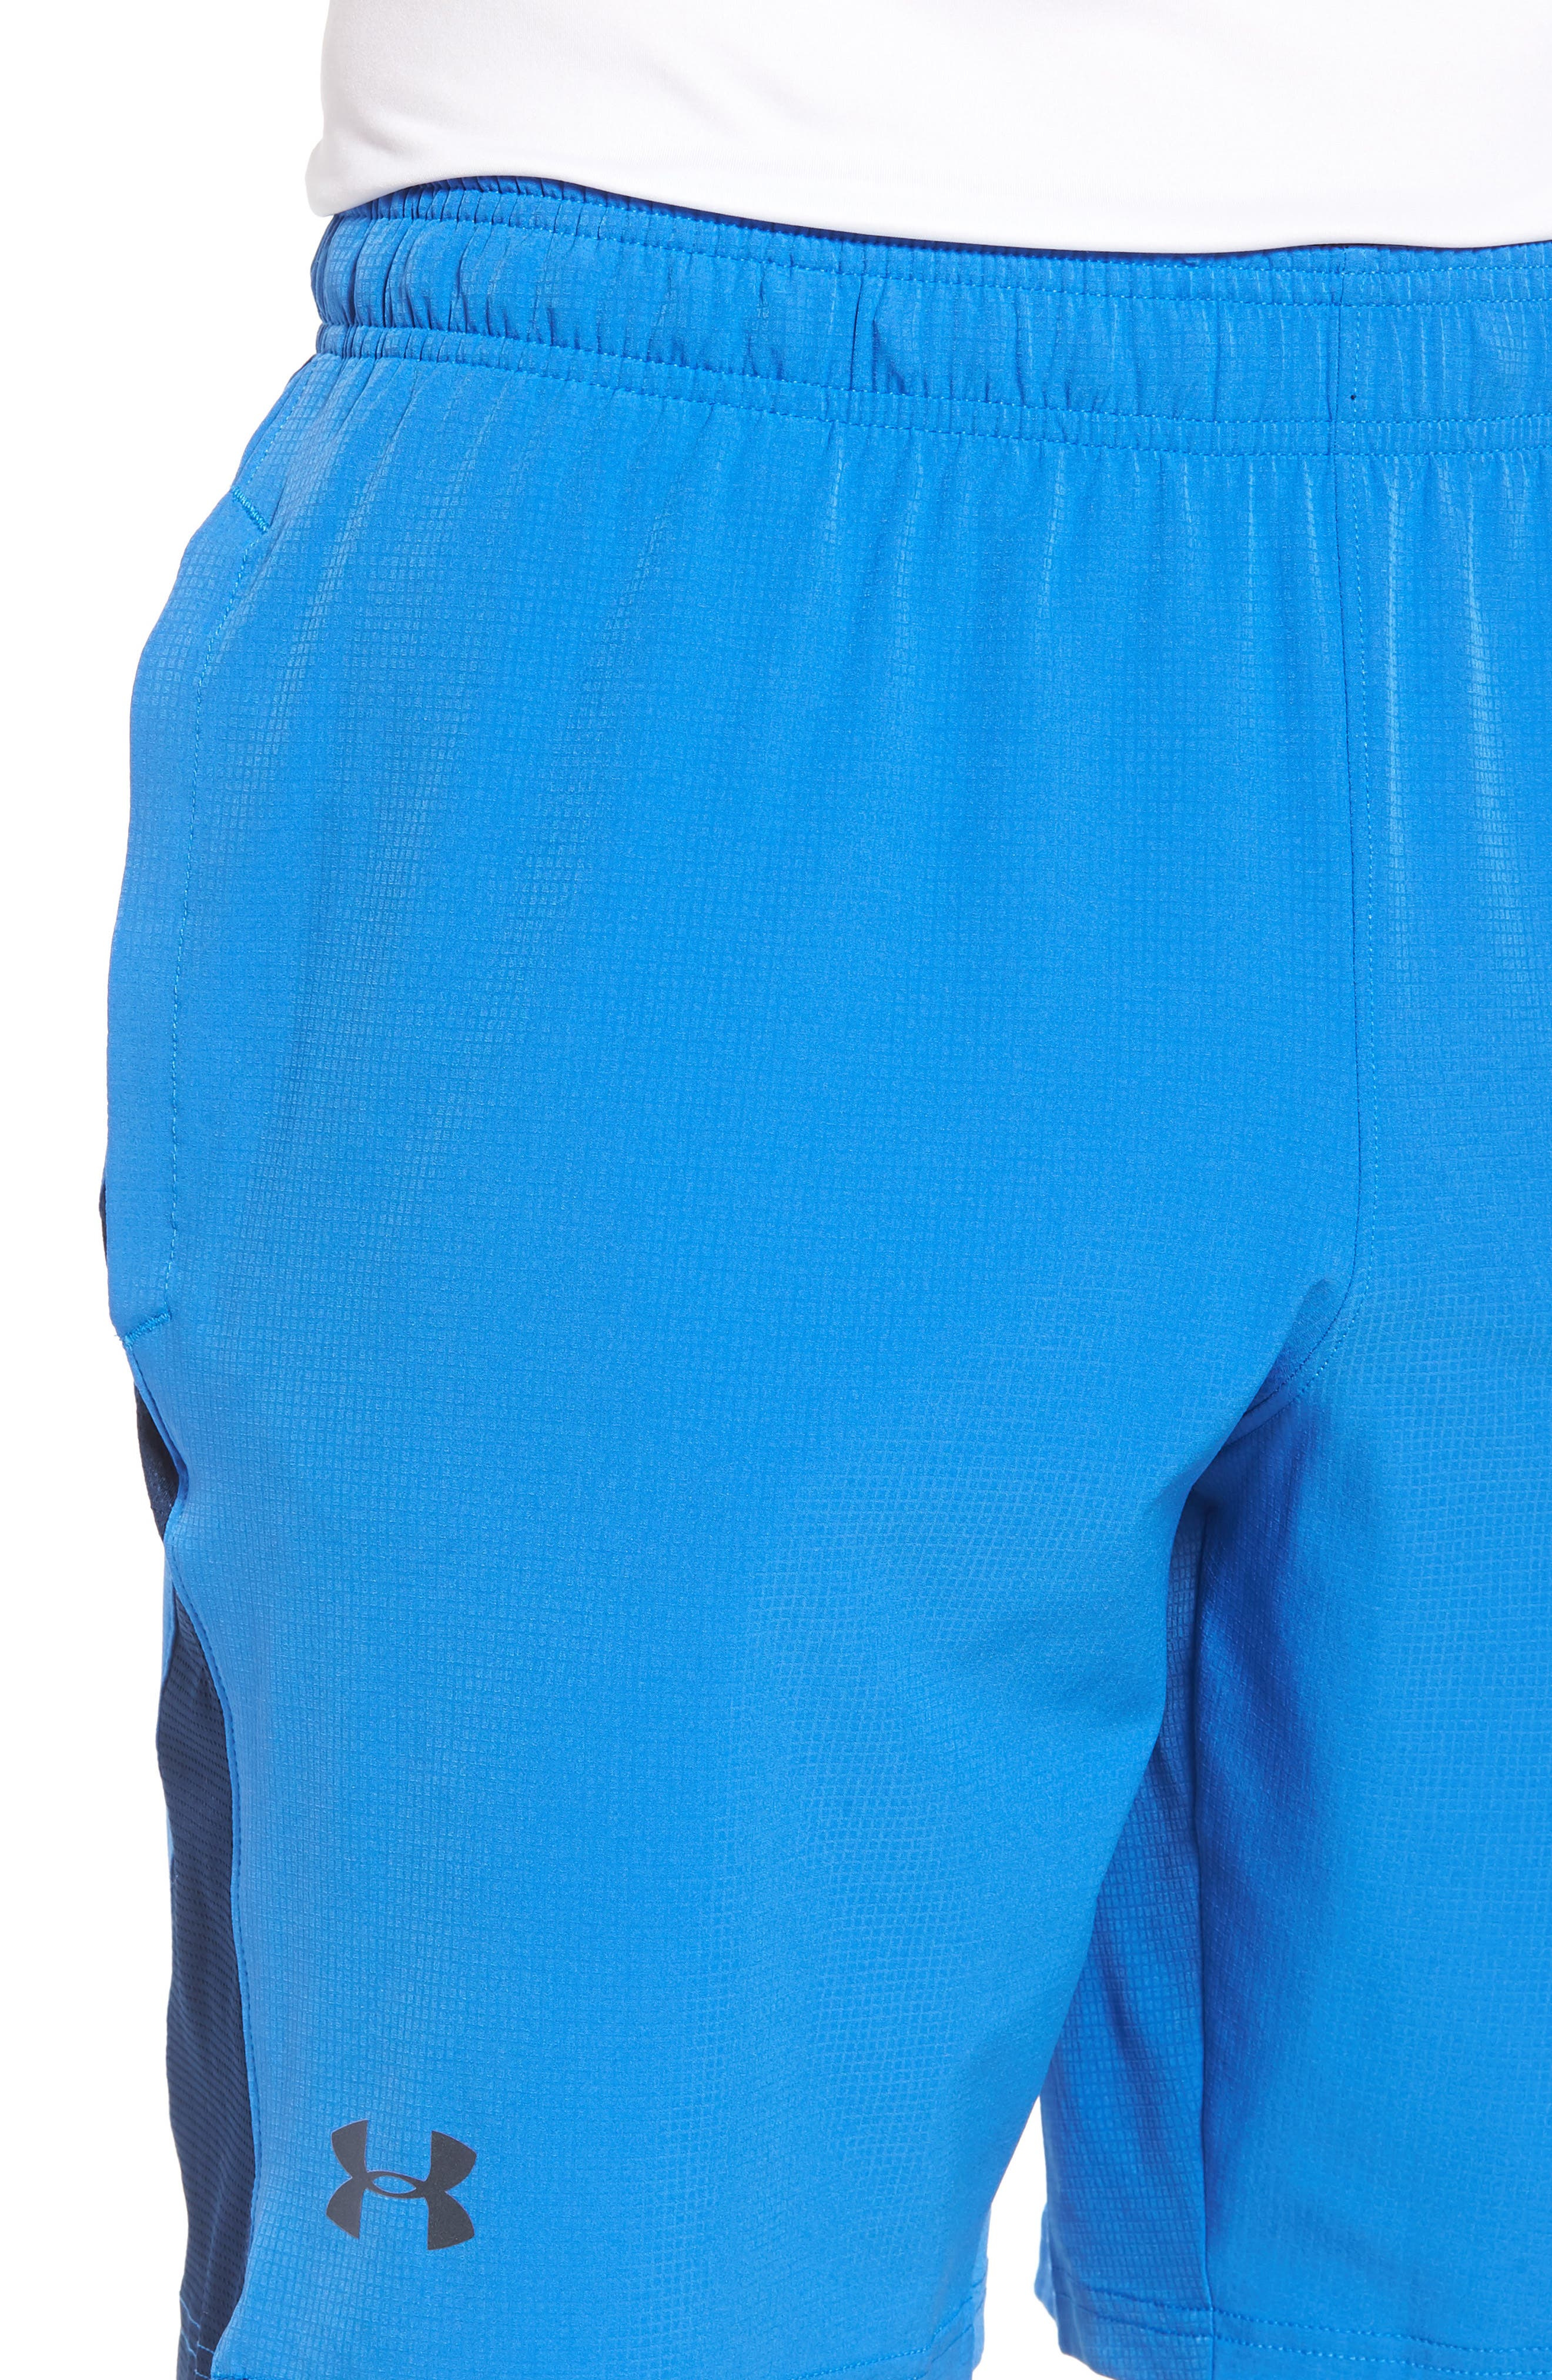 Regular Fit Cage Shorts,                             Alternate thumbnail 4, color,                             Mediterranean/ Graphite